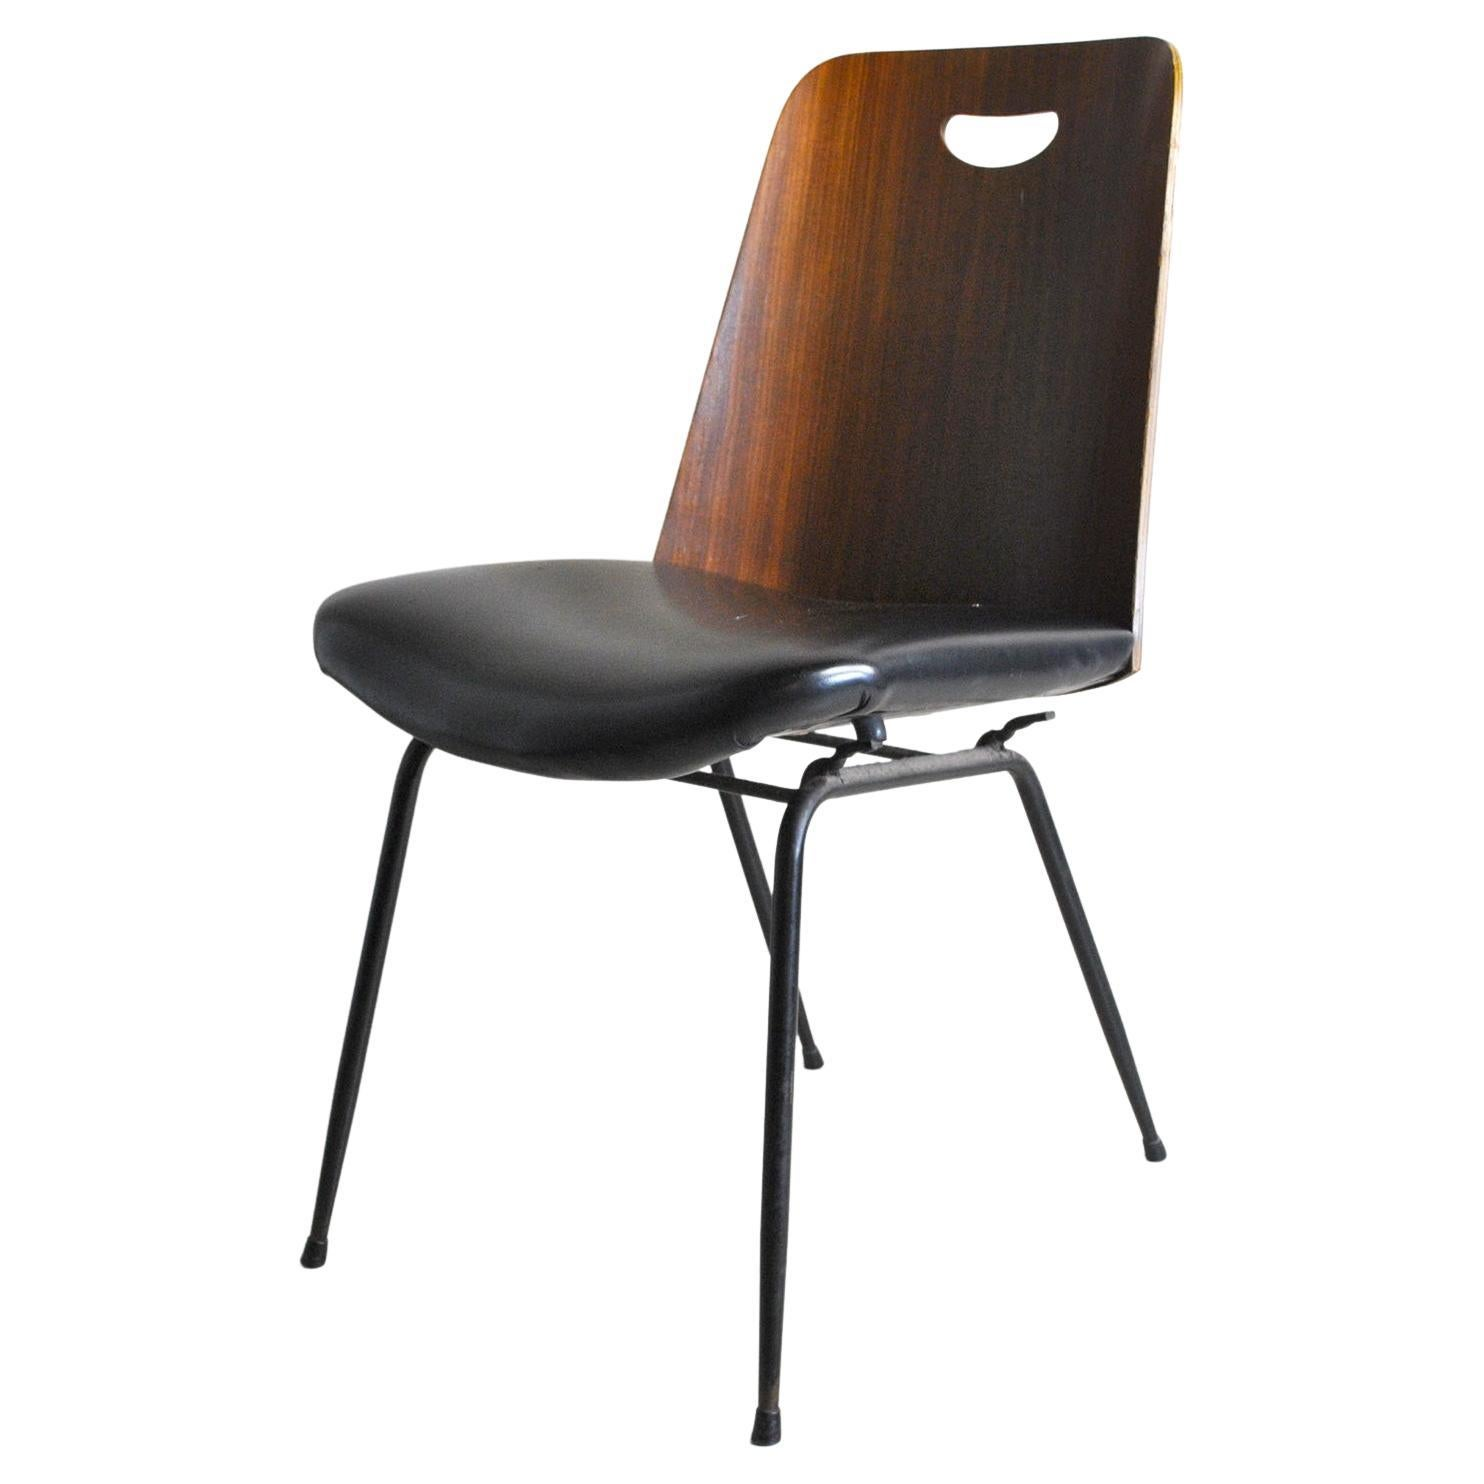 Gastone Rinaldi Chair for Rima from Mid Fifties